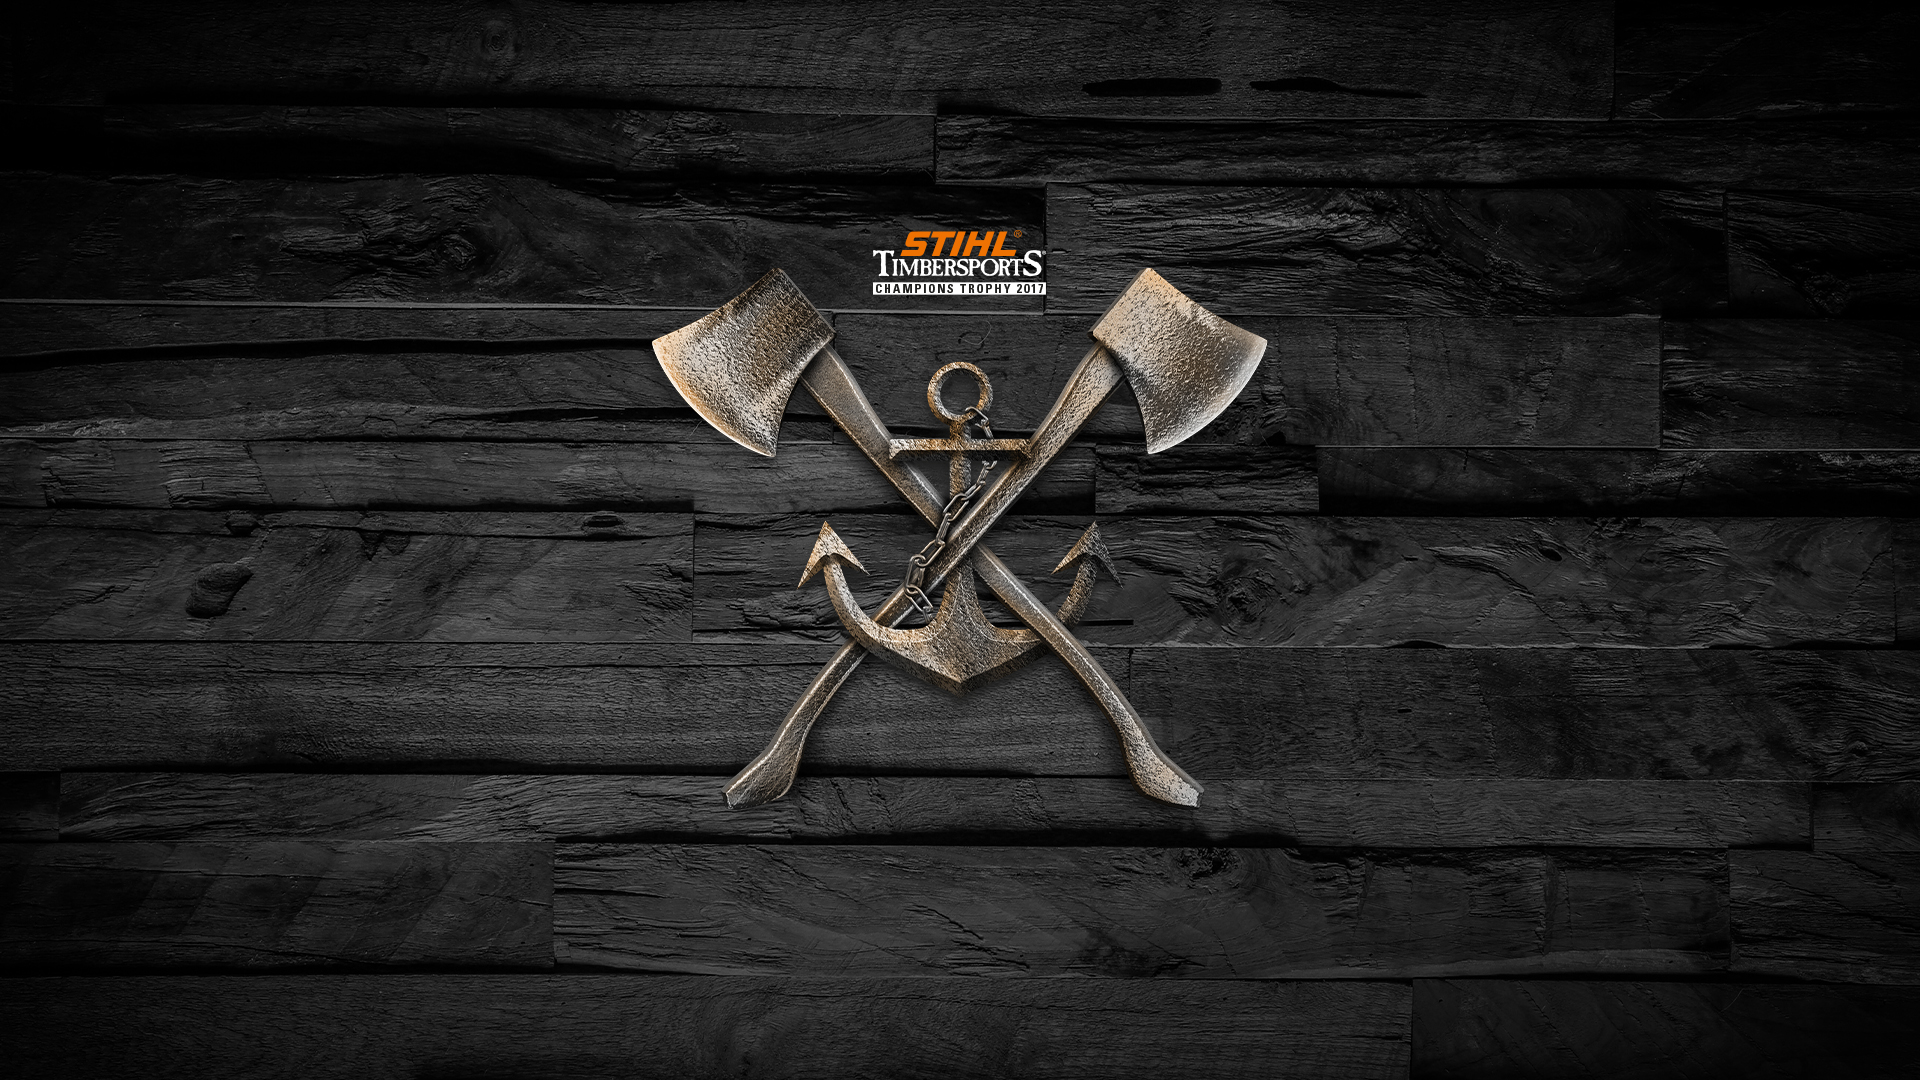 27950 stihl wallpaper backgrounds in hd 1920x1080